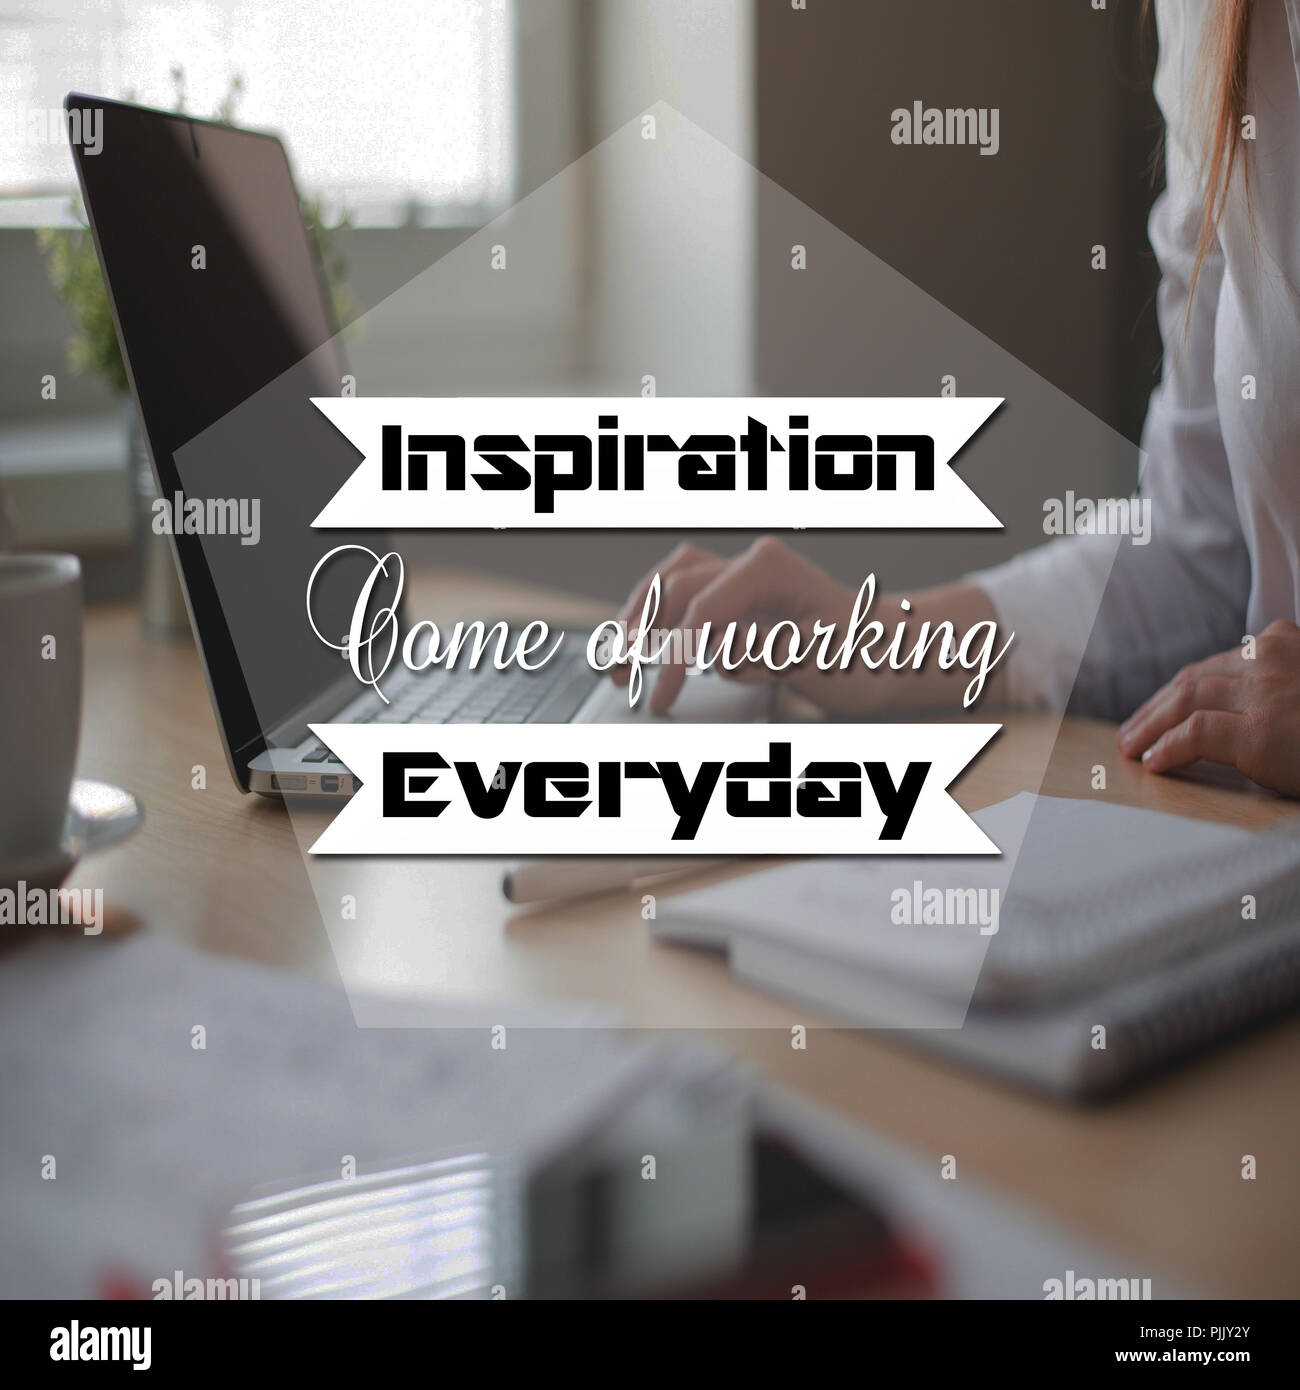 Inspirational Quotes Inspiration Came Of Working Everyday Positive Motivational Stock Photo Alamy